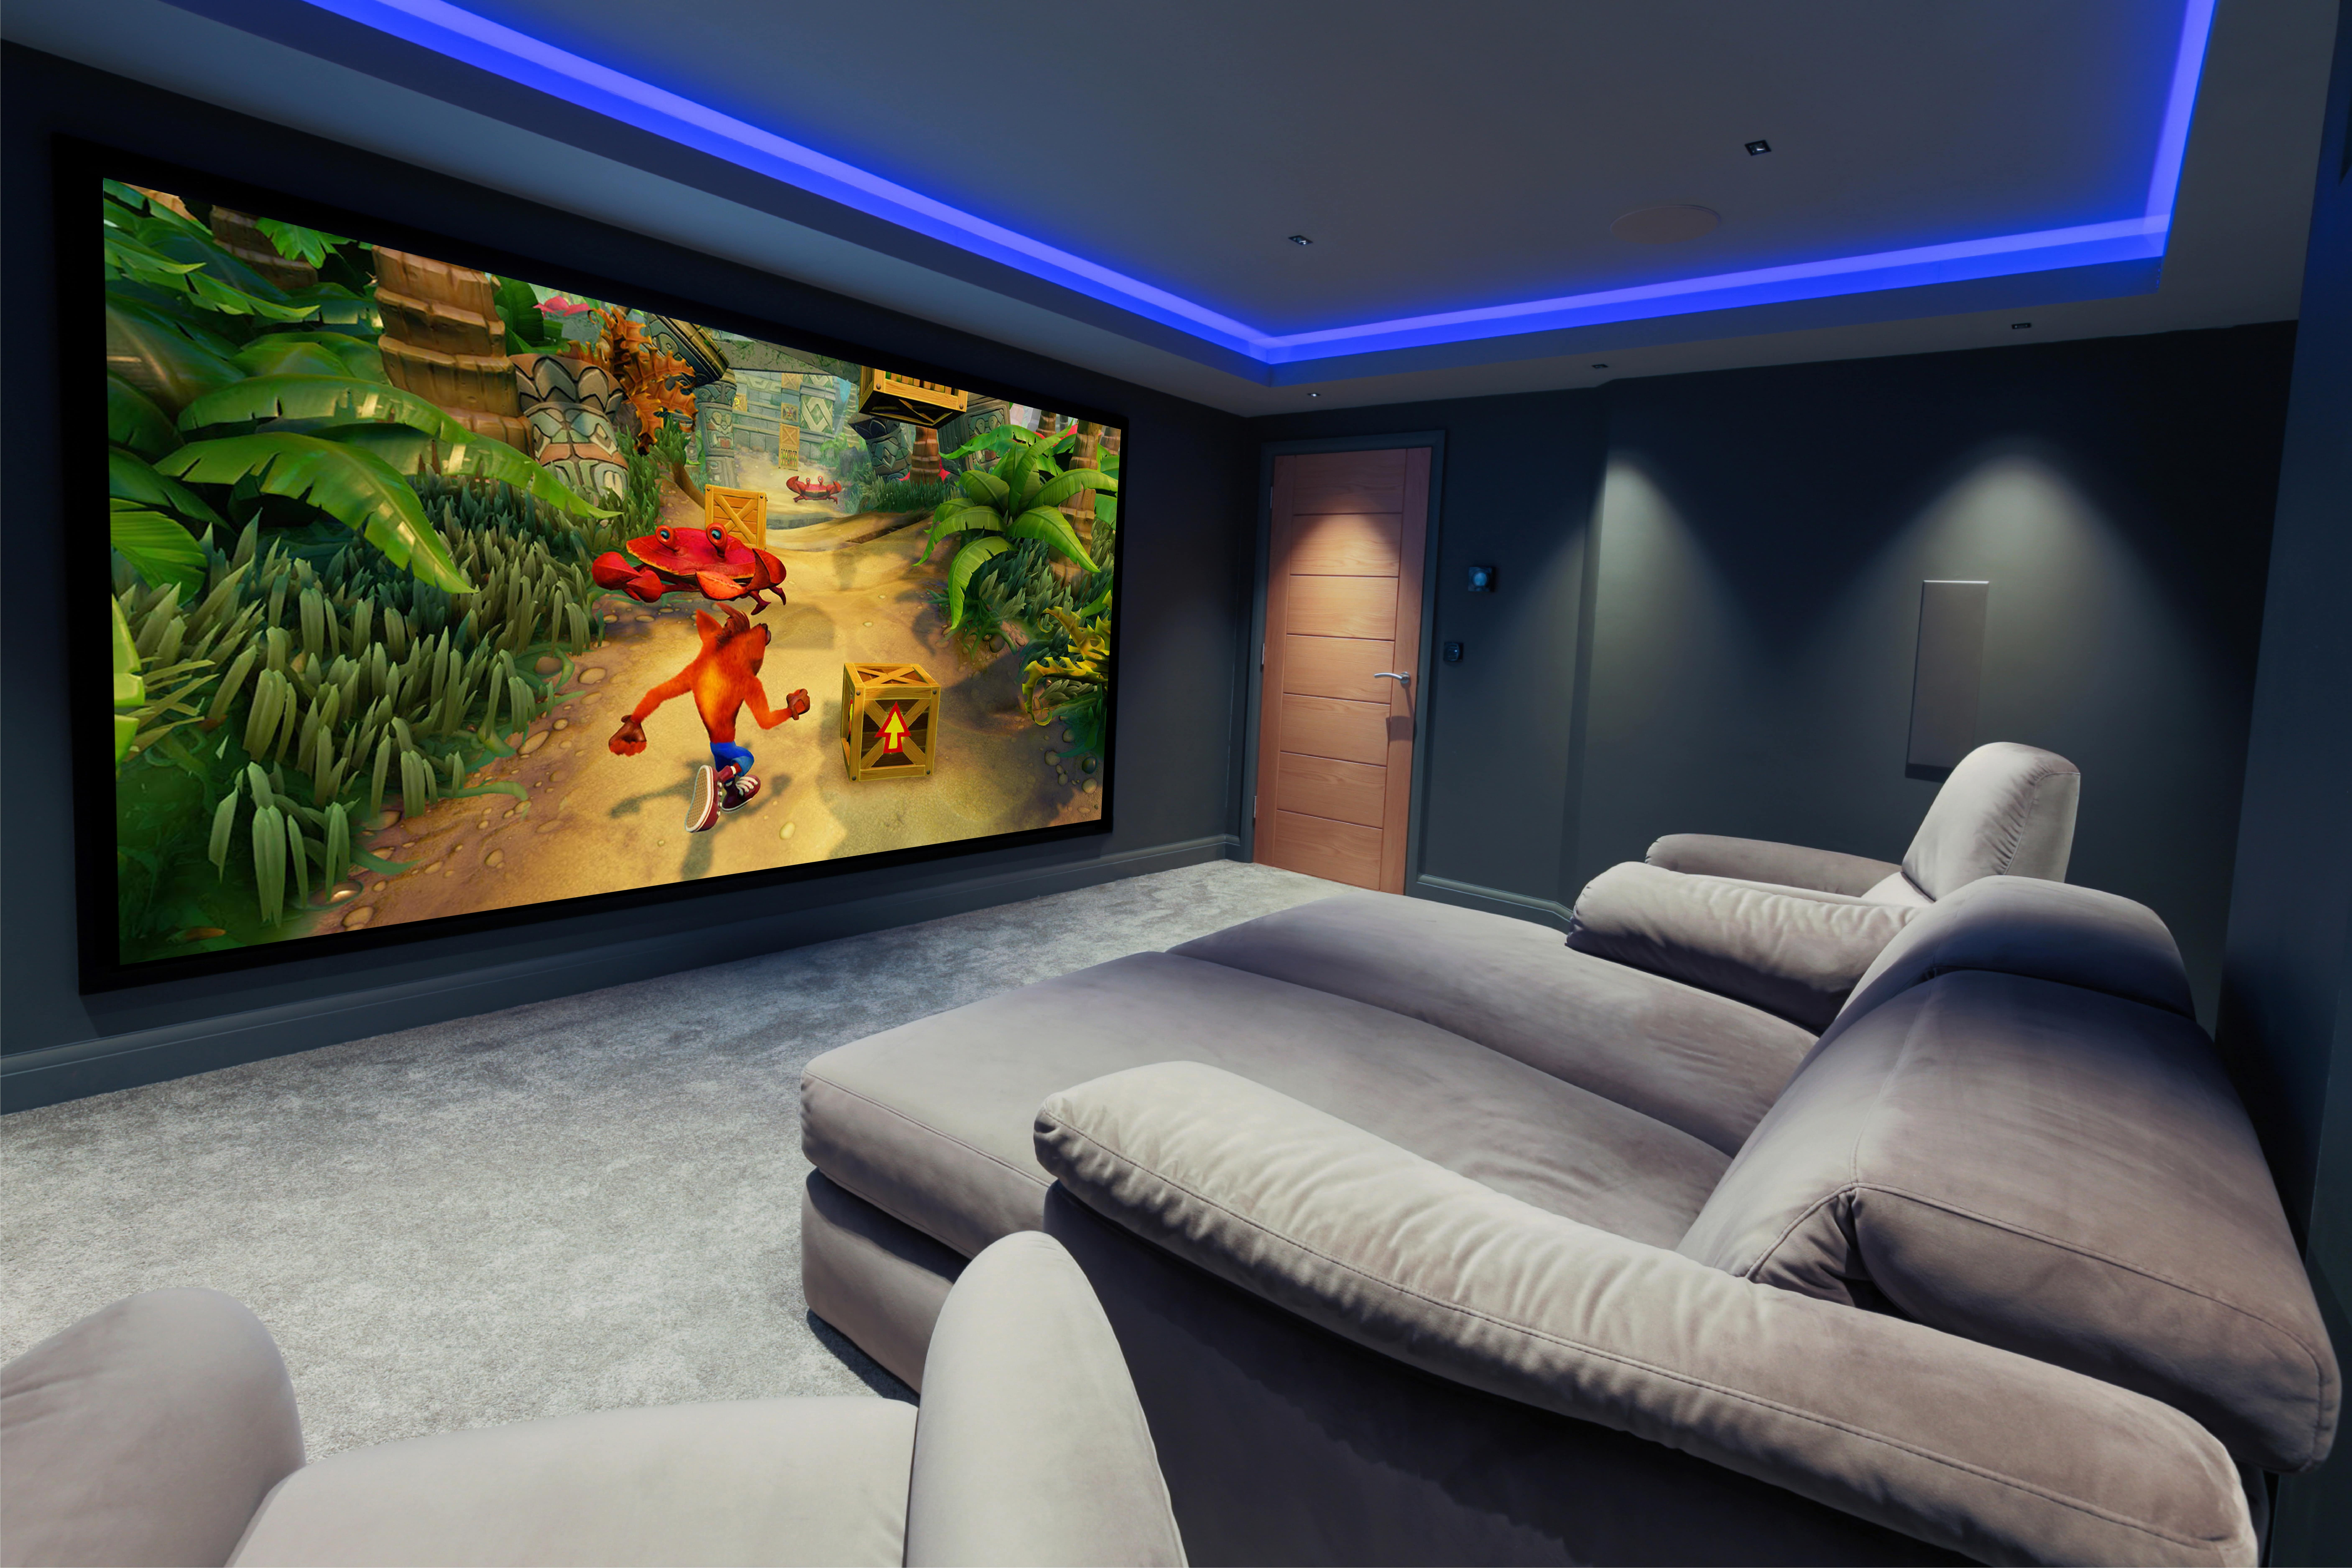 Crash bandicoot playing in a gaming room